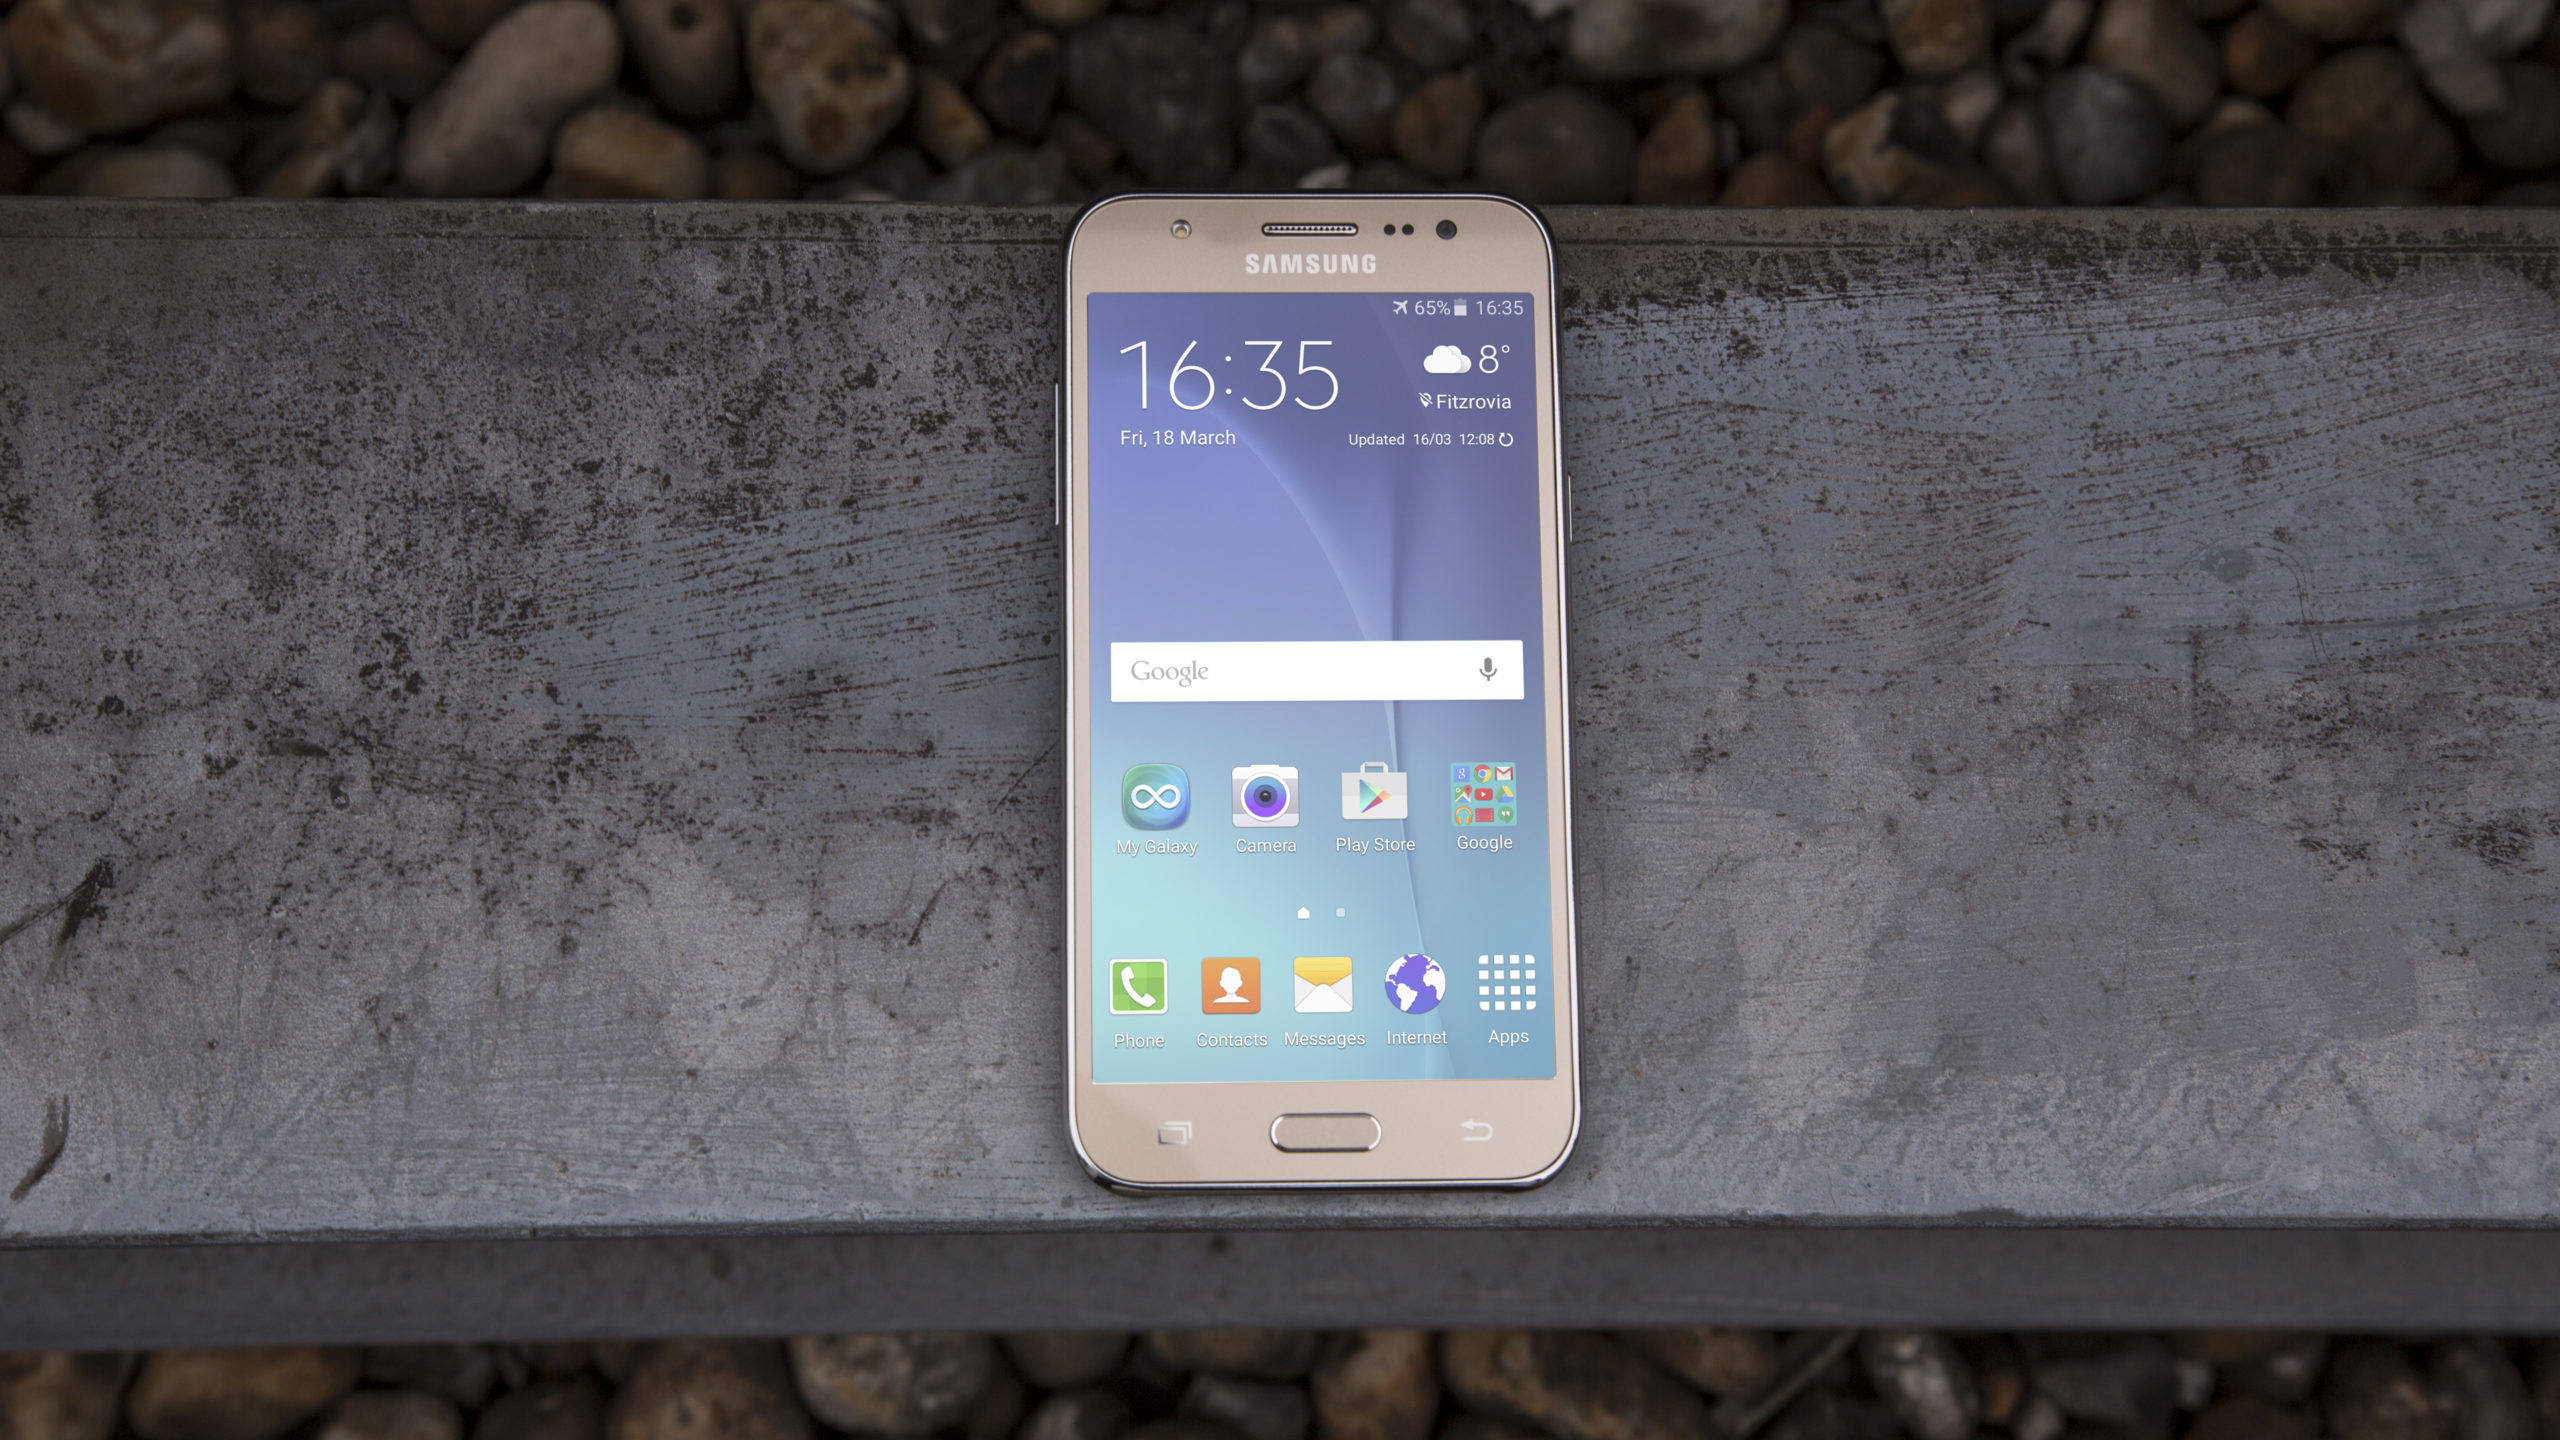 Samsung Galaxy J5 Review A Great Budget Handset In Its Day But Hold Out For The 2017 Refresh